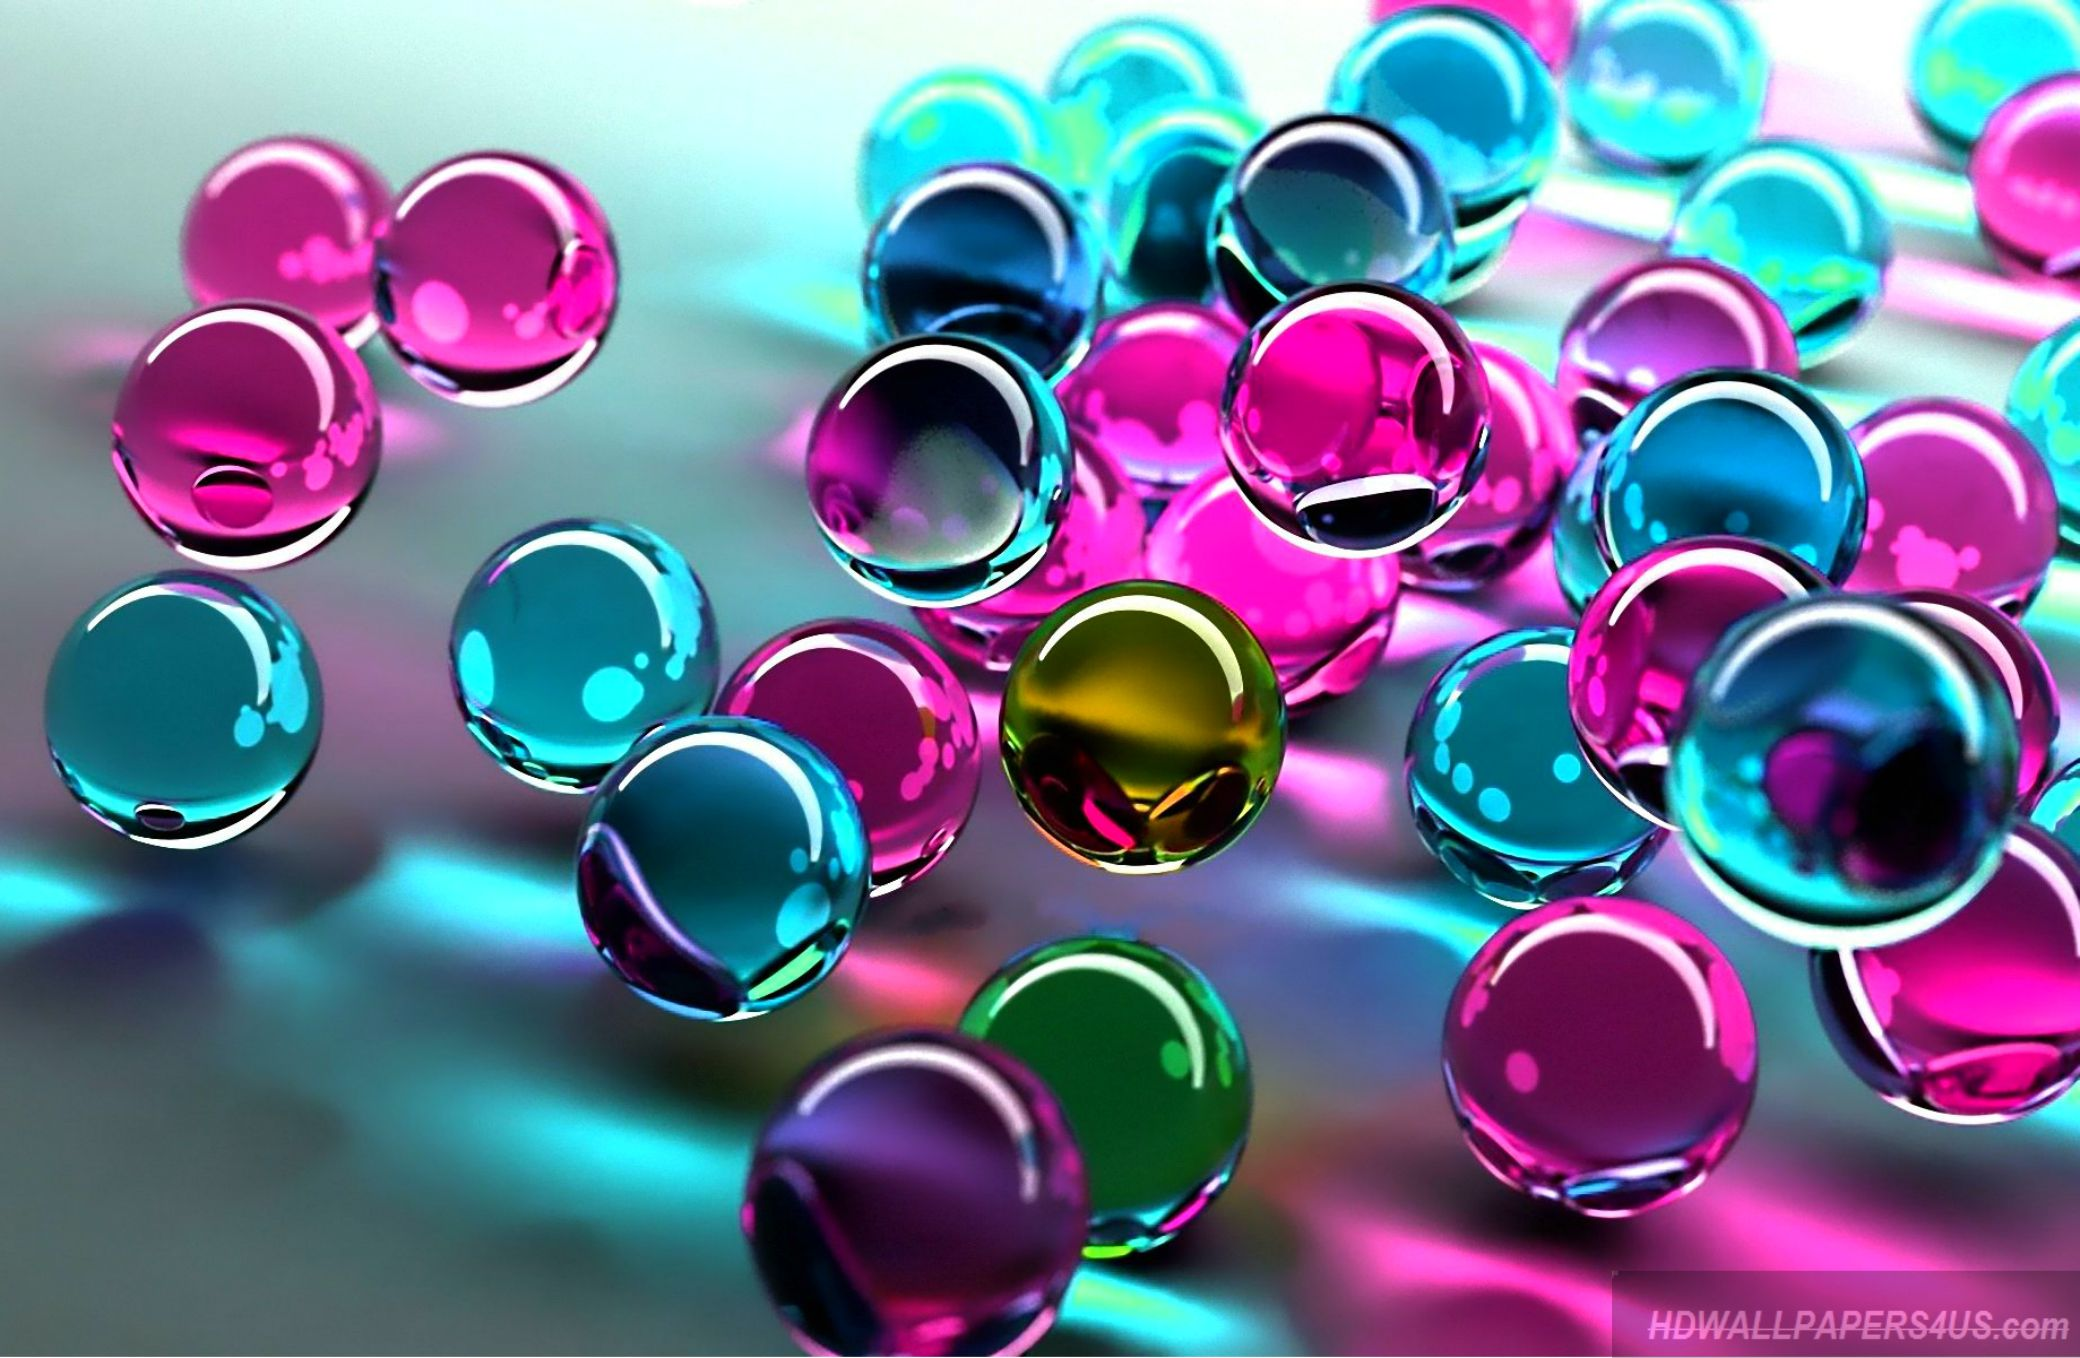 Bubble Wallpaper Hd Pink 3d Colorful 4k Abstract Wallpaper Hd Hd Wallpapers 4 Us